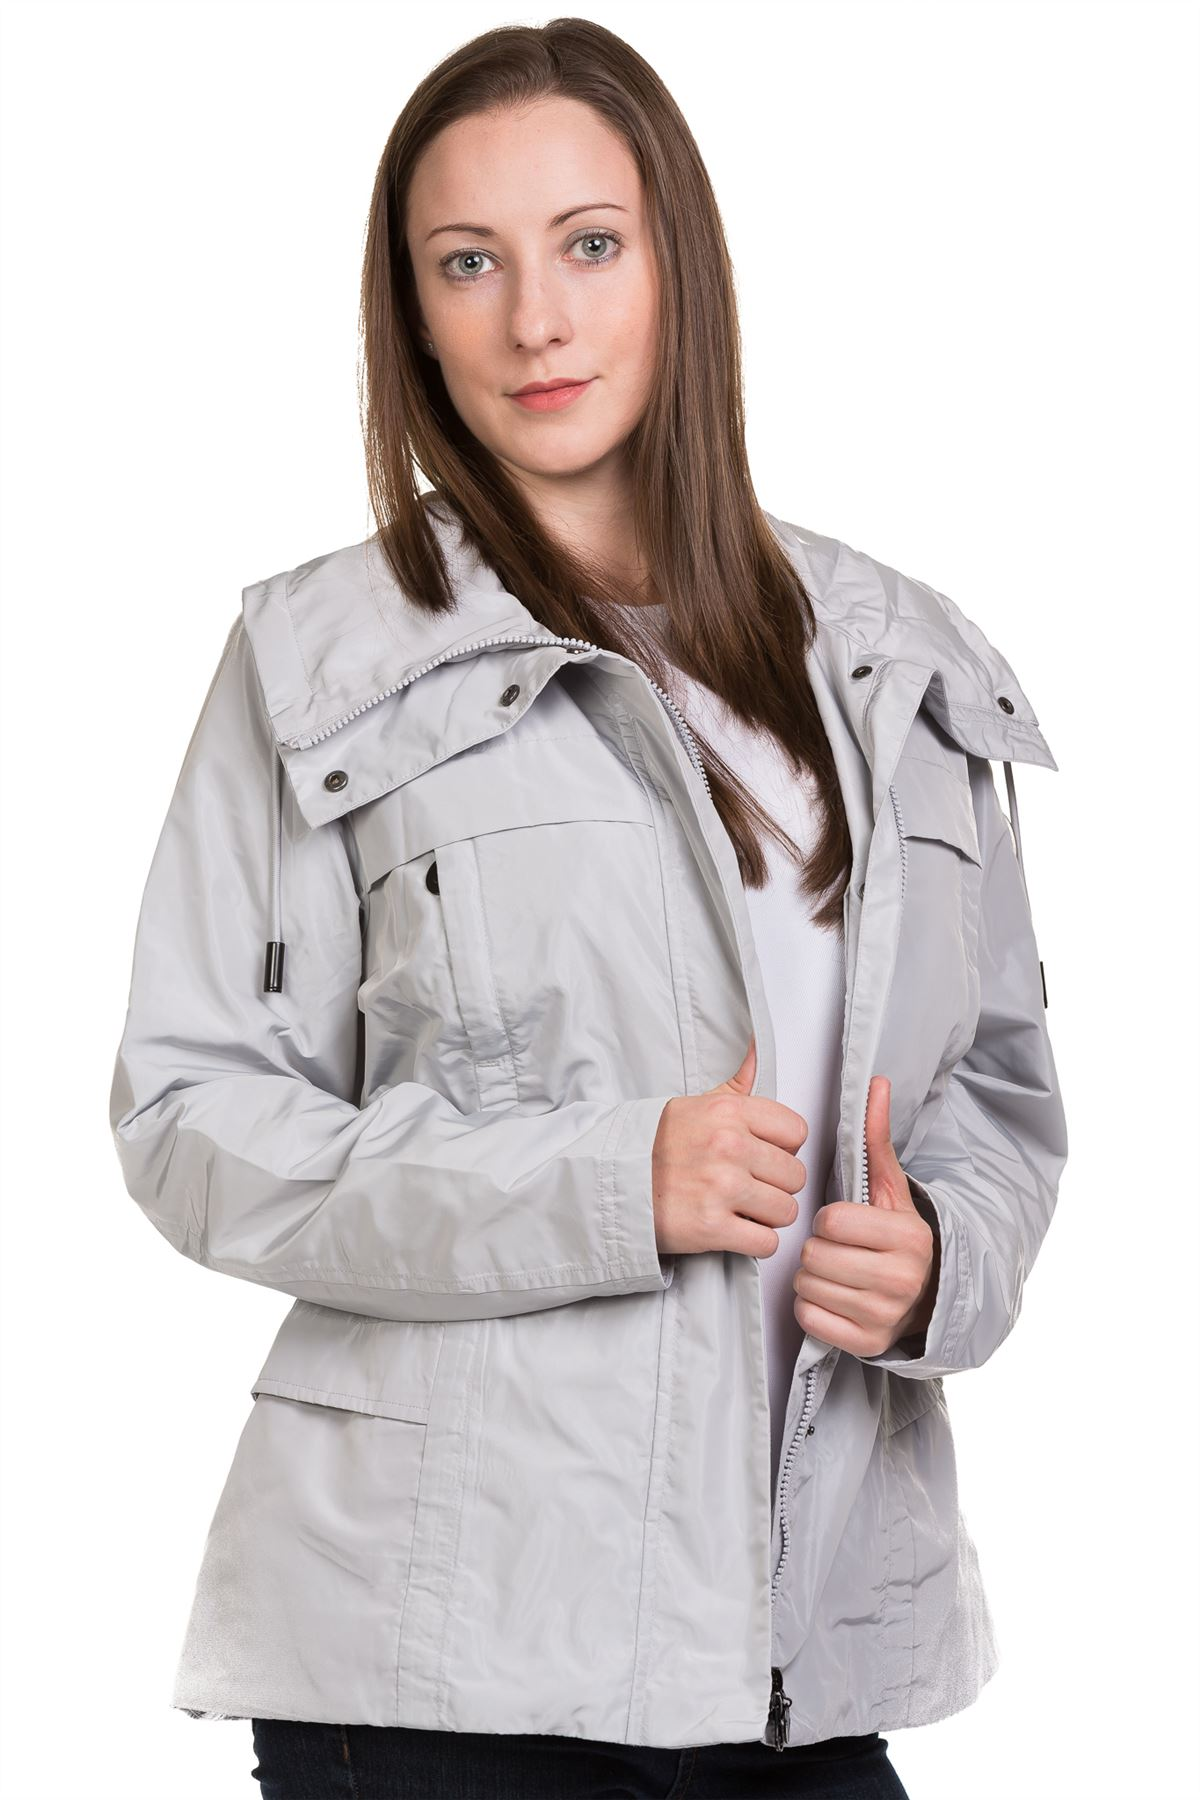 New-Ladies-casual-Jacket-Plain-Lining-Lightweight-Quality-outwear-Coat-8-16 thumbnail 9